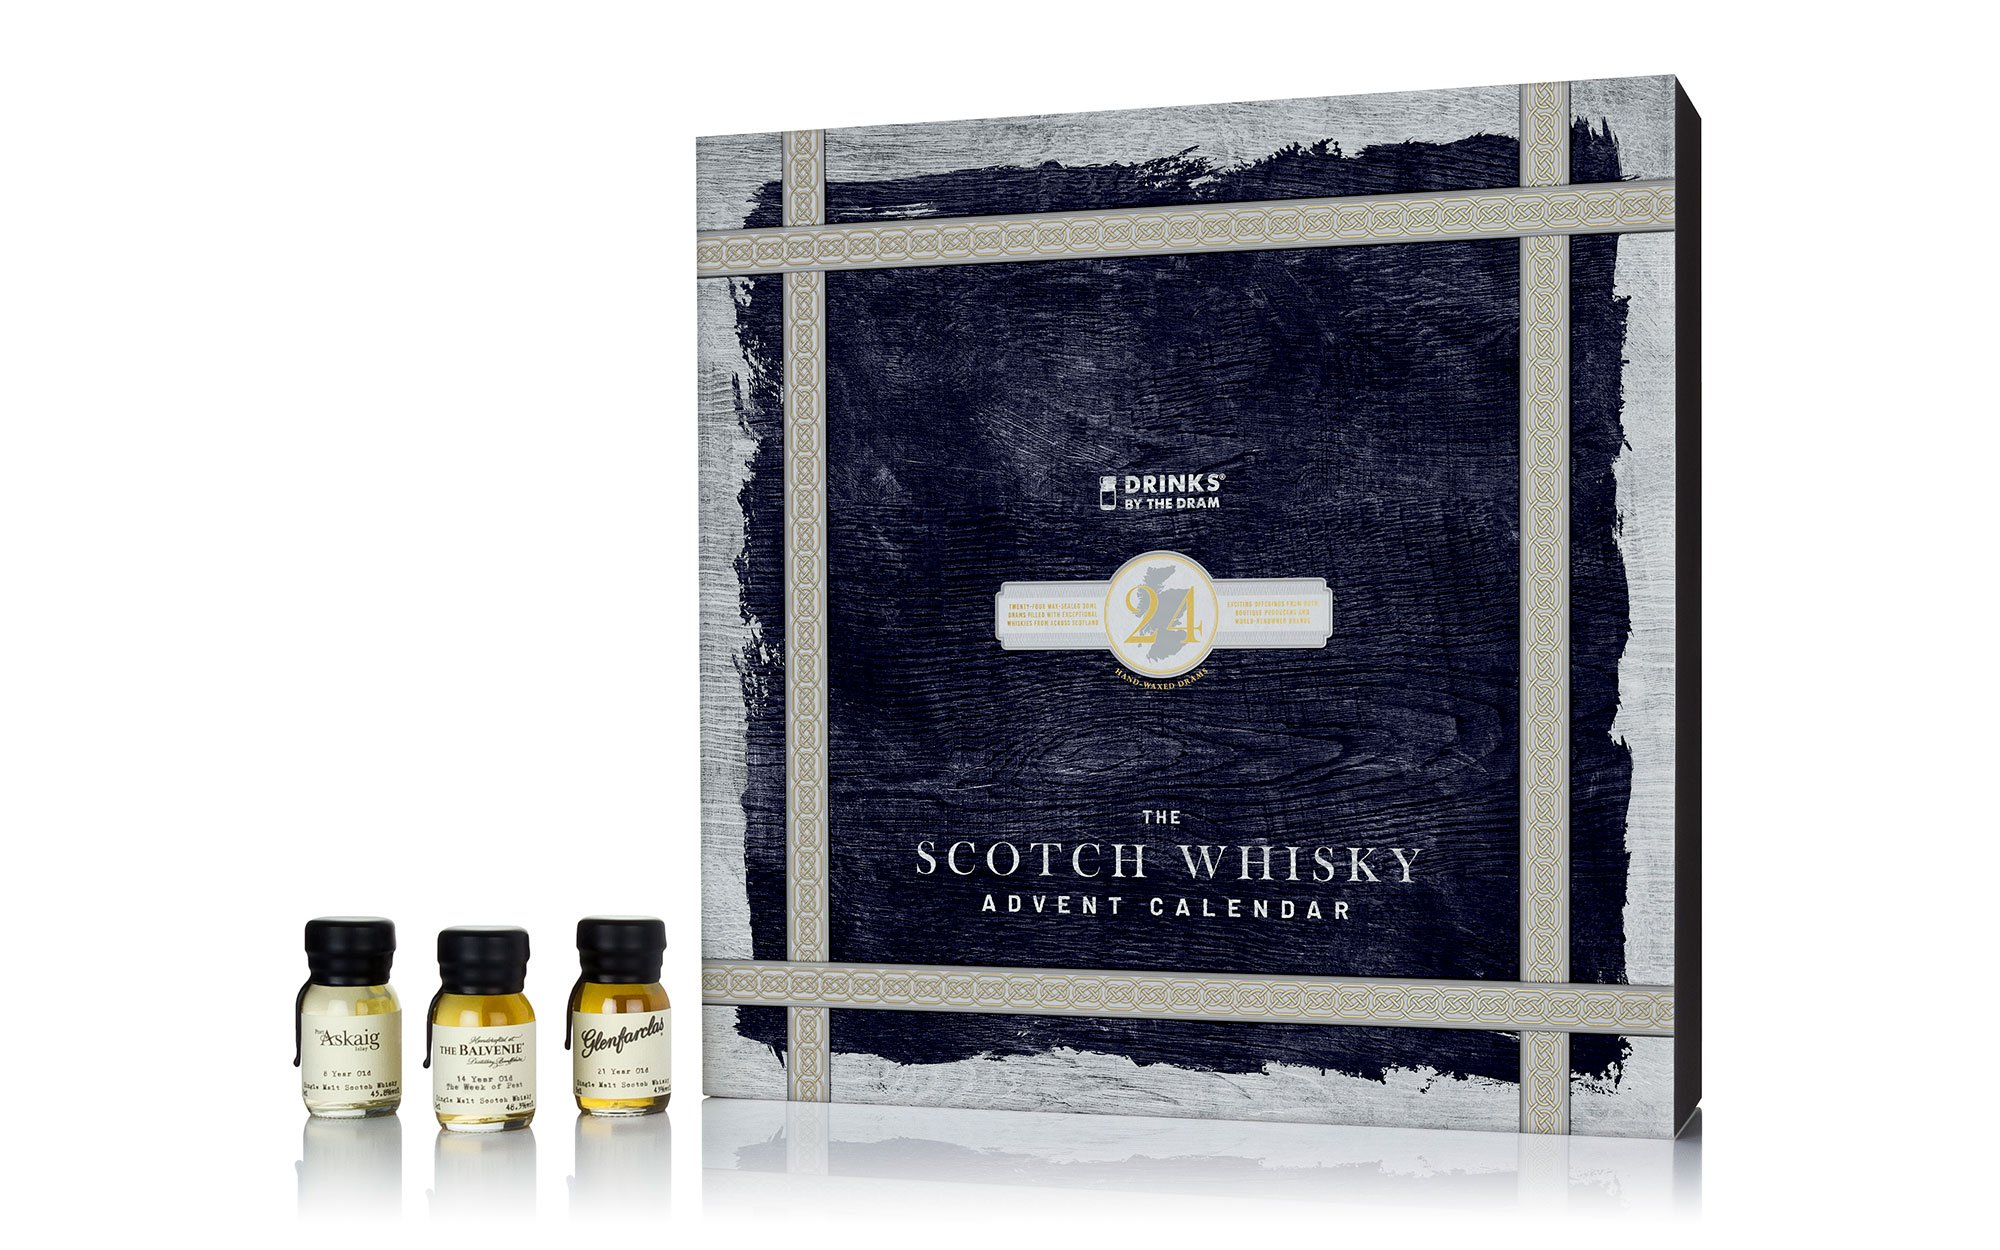 The Scotch Whisky Advent Calendar